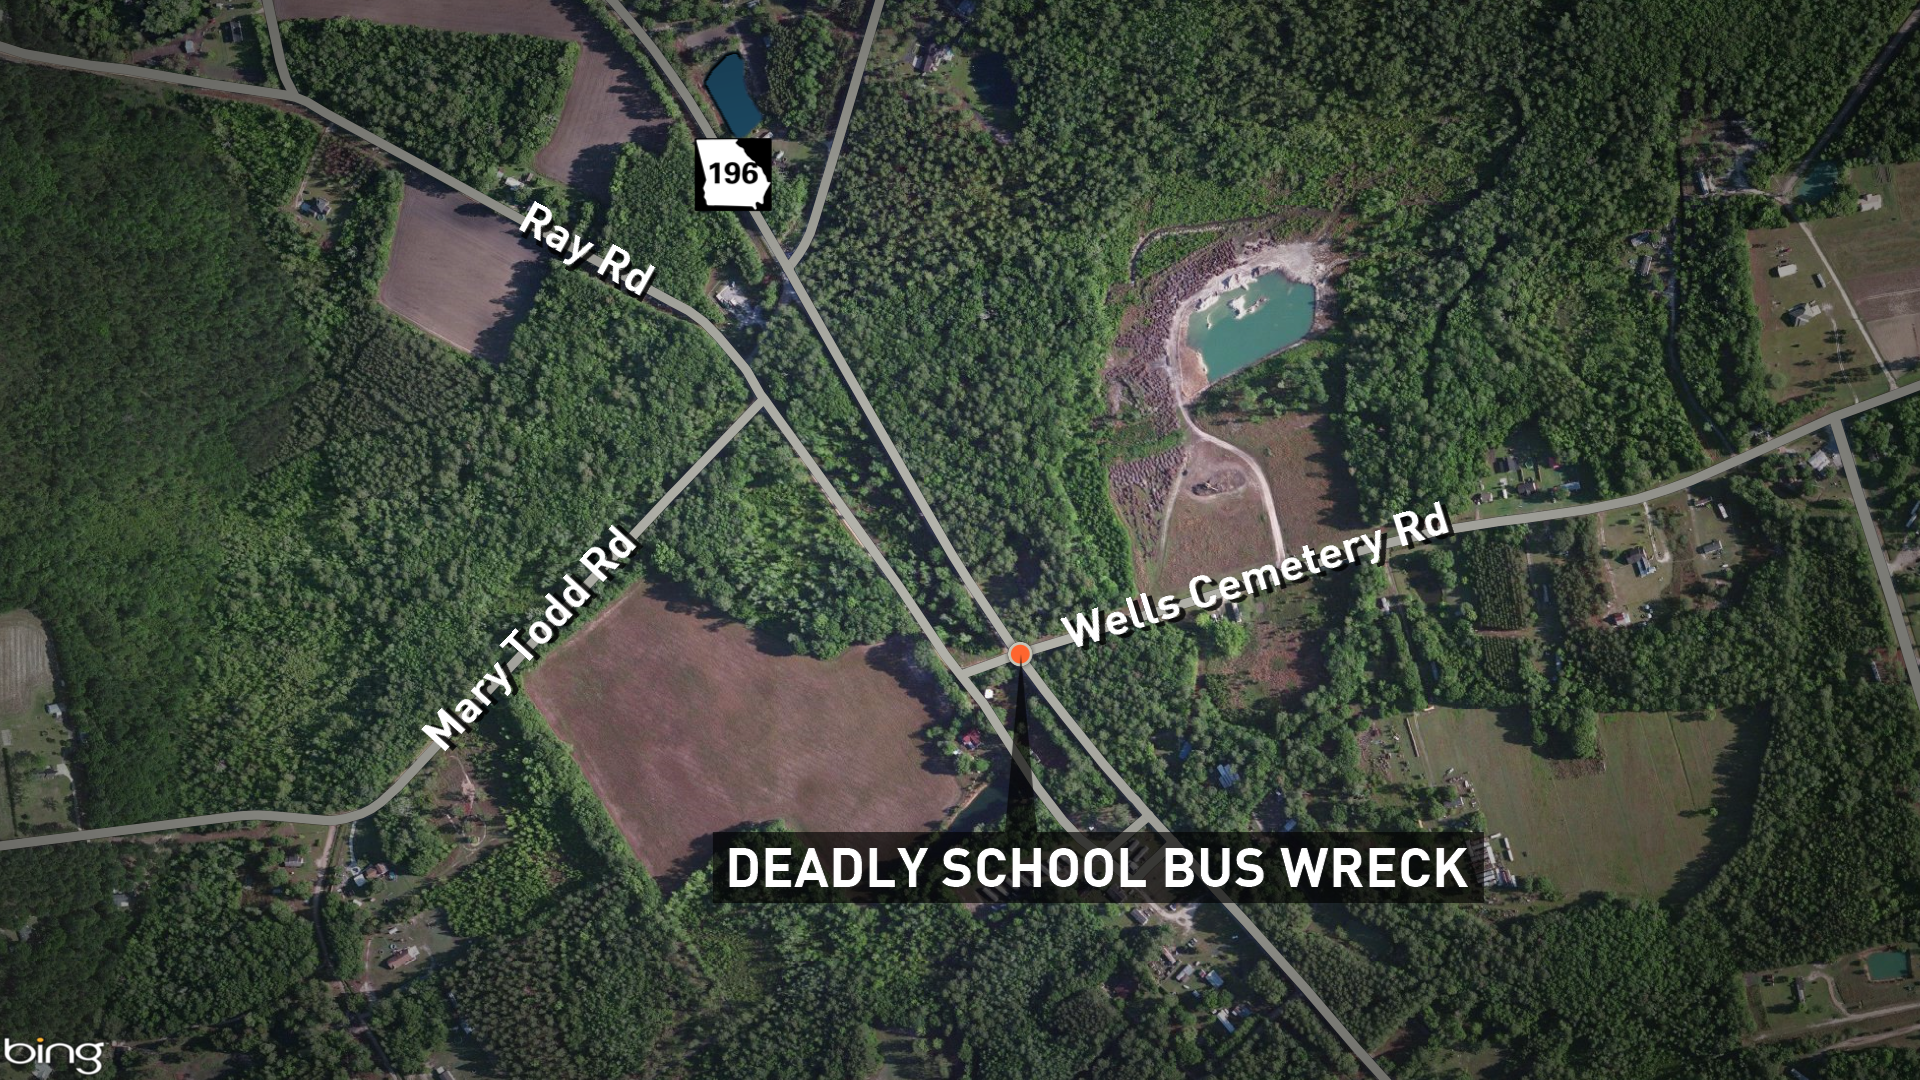 School Bus Crash in Georgia Kills 5-Year-Old, Injures 22 Children